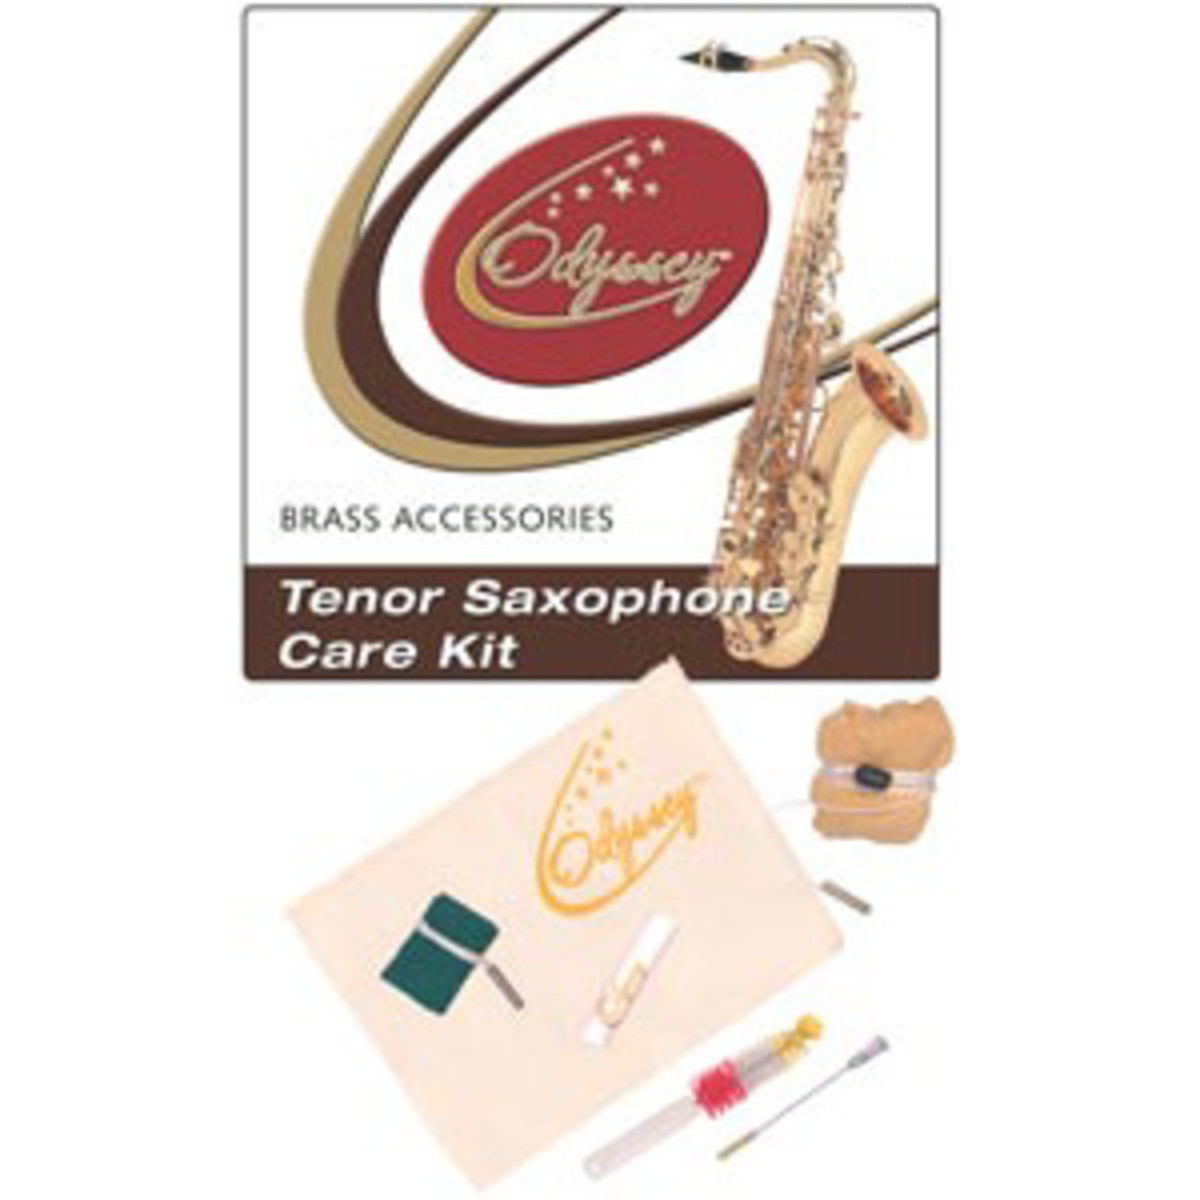 Odyssey Tenor Saxophone Care Kit